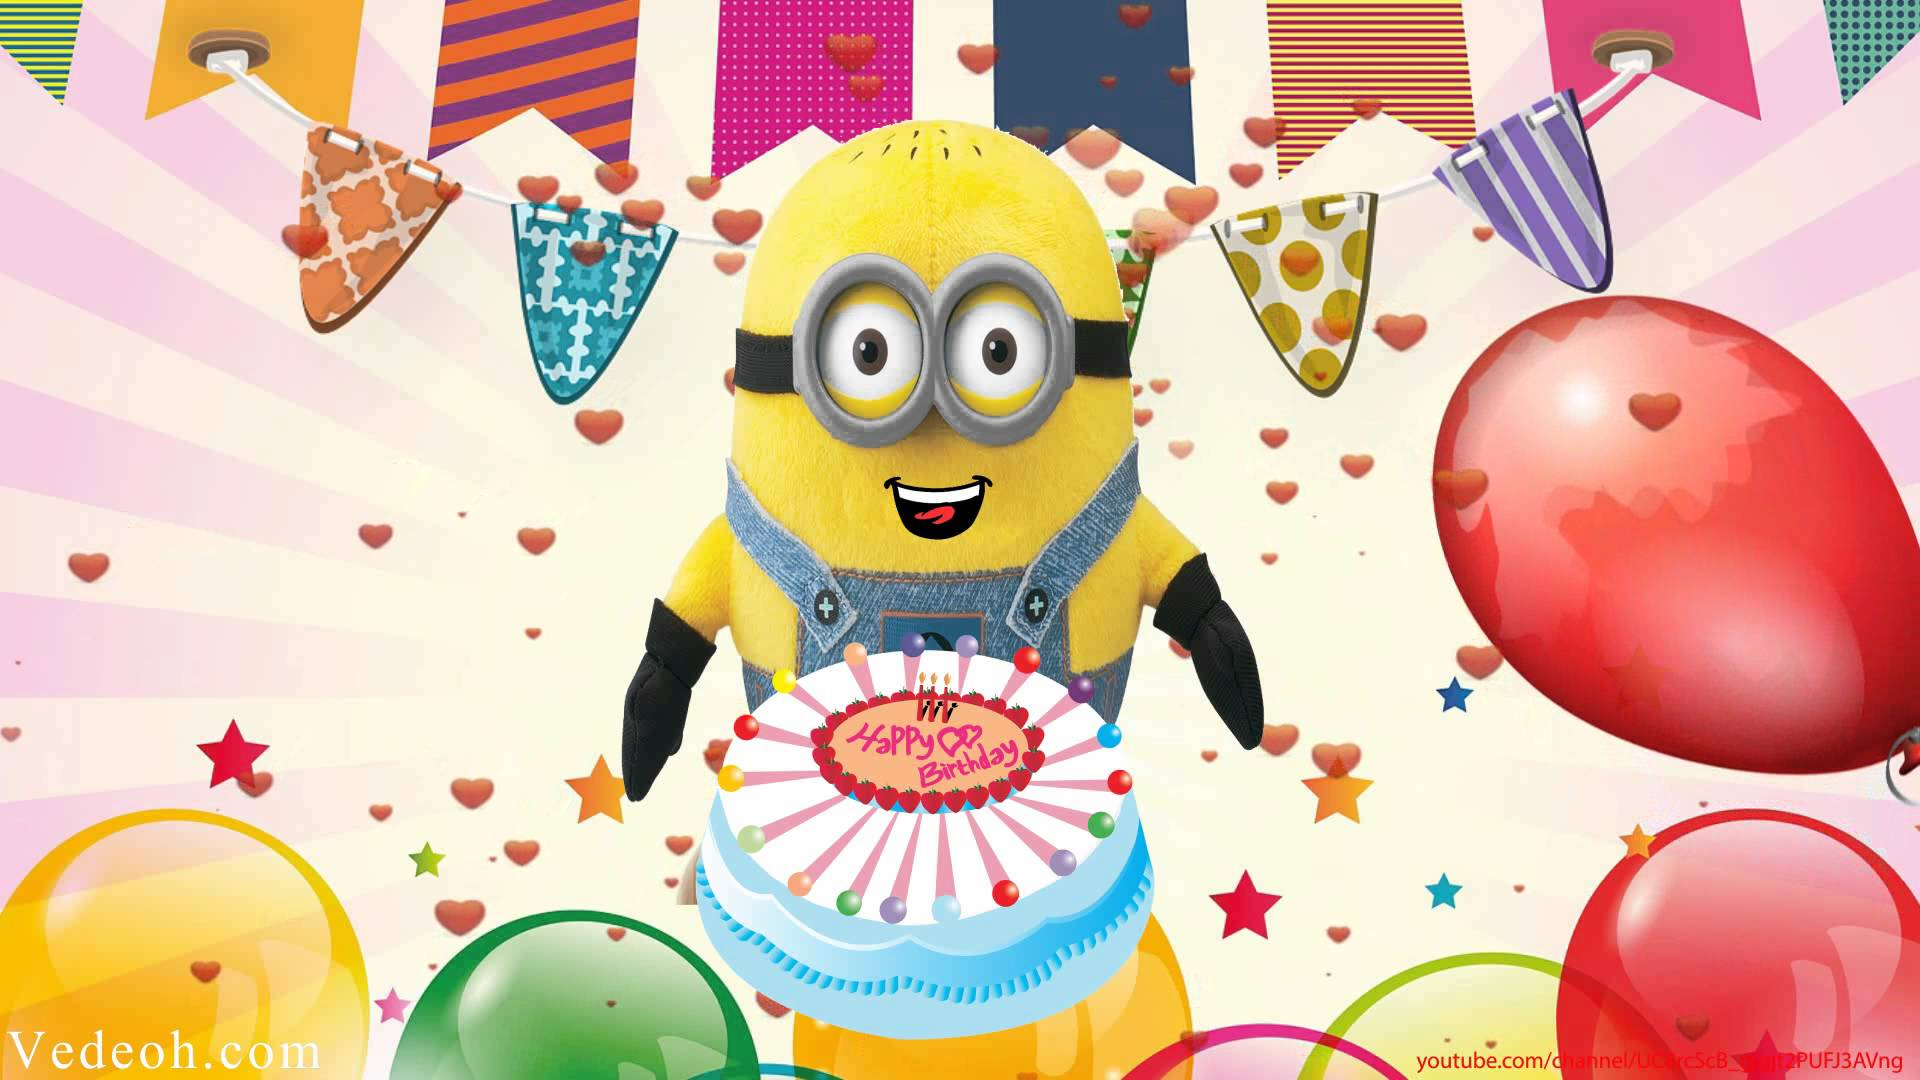 Happy birthday jerry clipart jpg transparent library Despicable Me Minion Jerry Buddie Singing Happy Birthday Song ... jpg transparent library